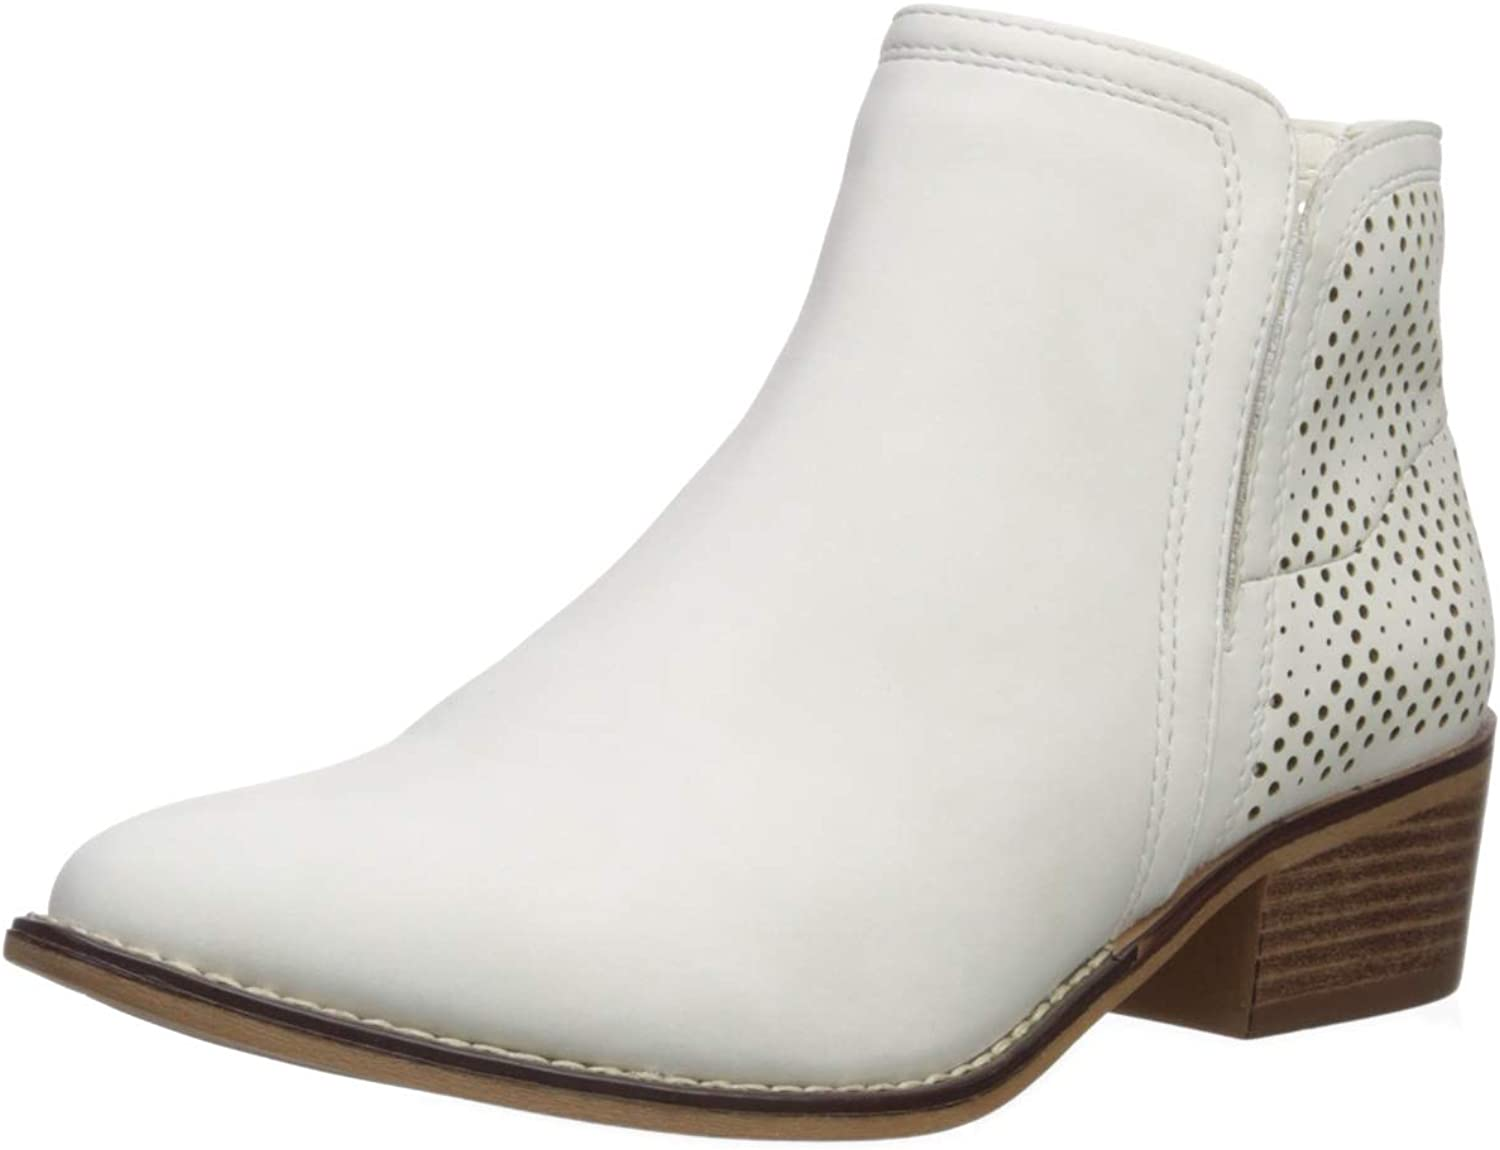 Madden girl Womens Neville Ankle Boot